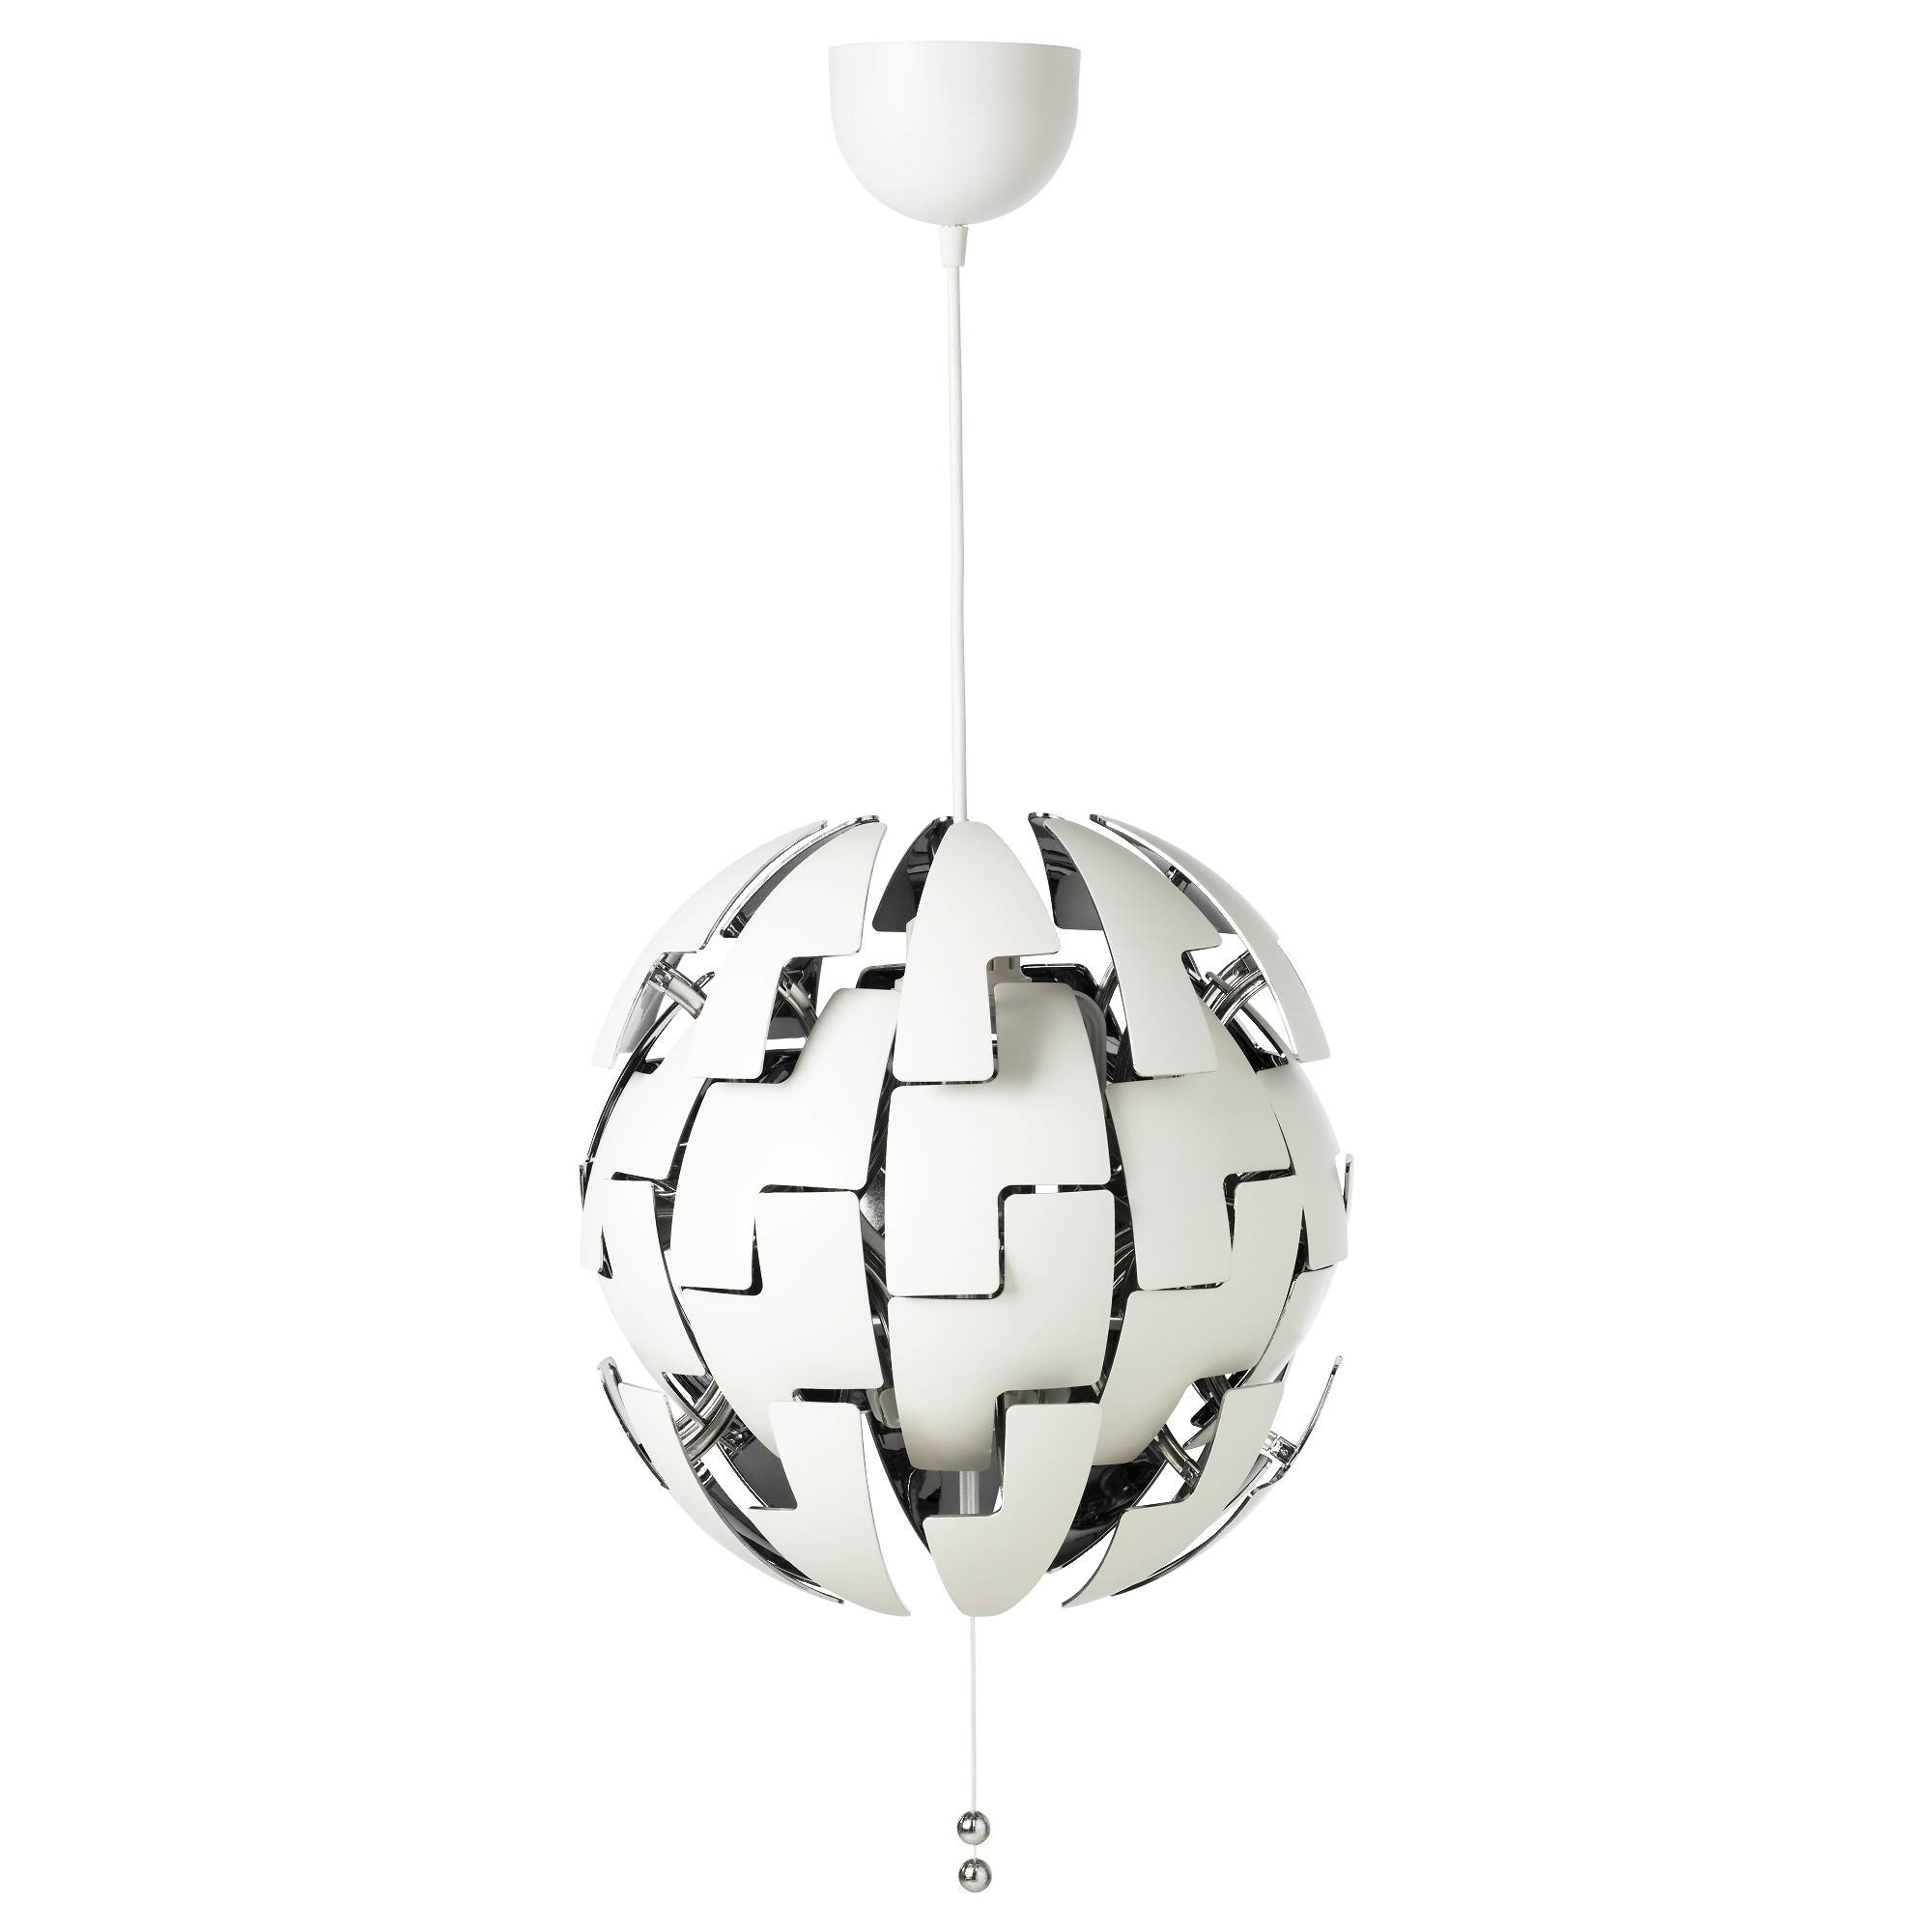 Ikea Ps 2014 Pendant Lamp White/silver Colour – Ikea With Regard To Silver Ball Pendant Lights (View 8 of 15)